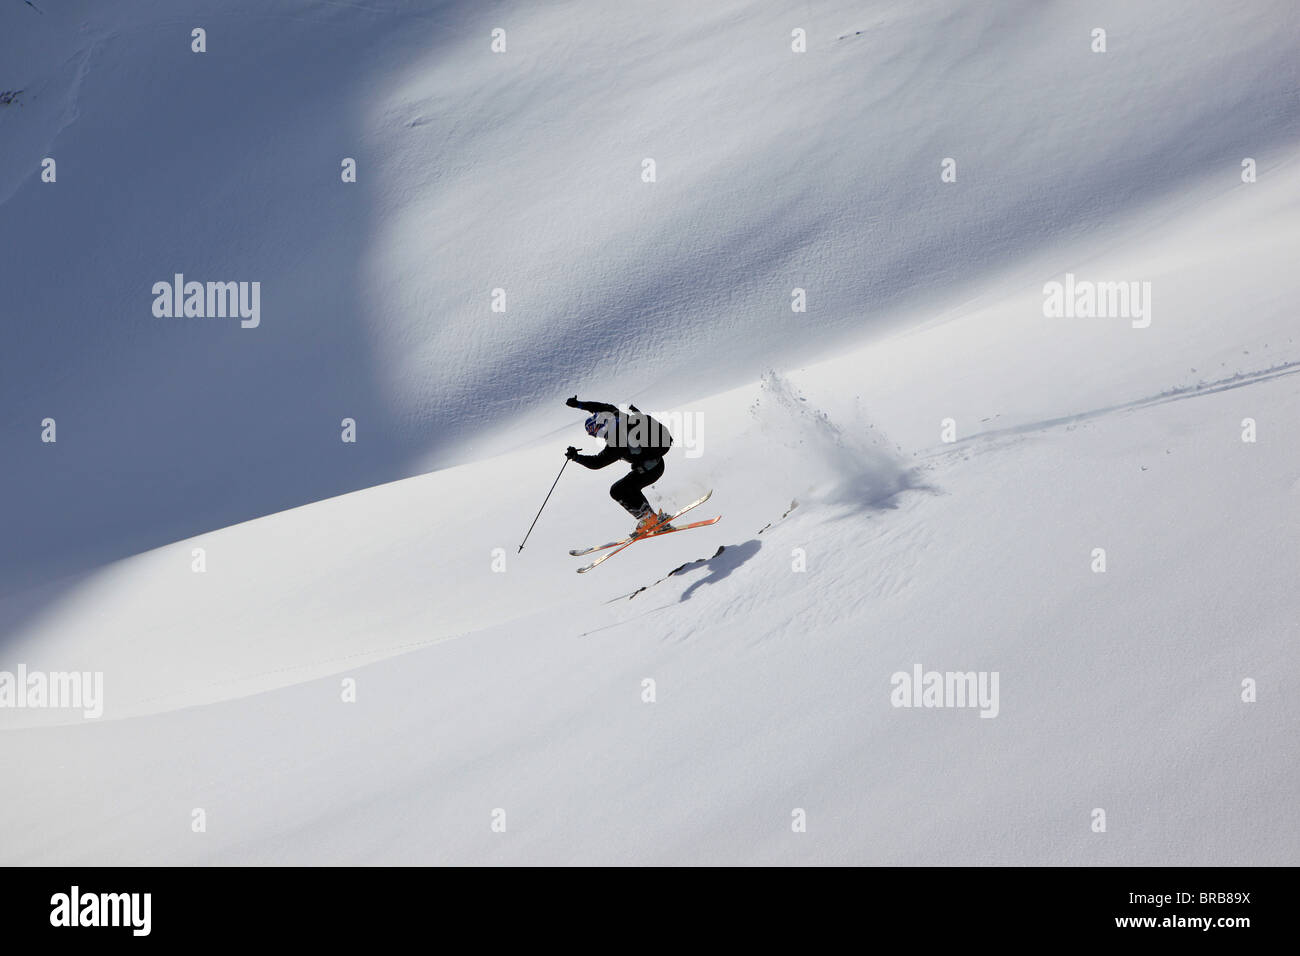 A skier jumps over some rocks into the powder on a Val Gardena off piste slope - Stock Image